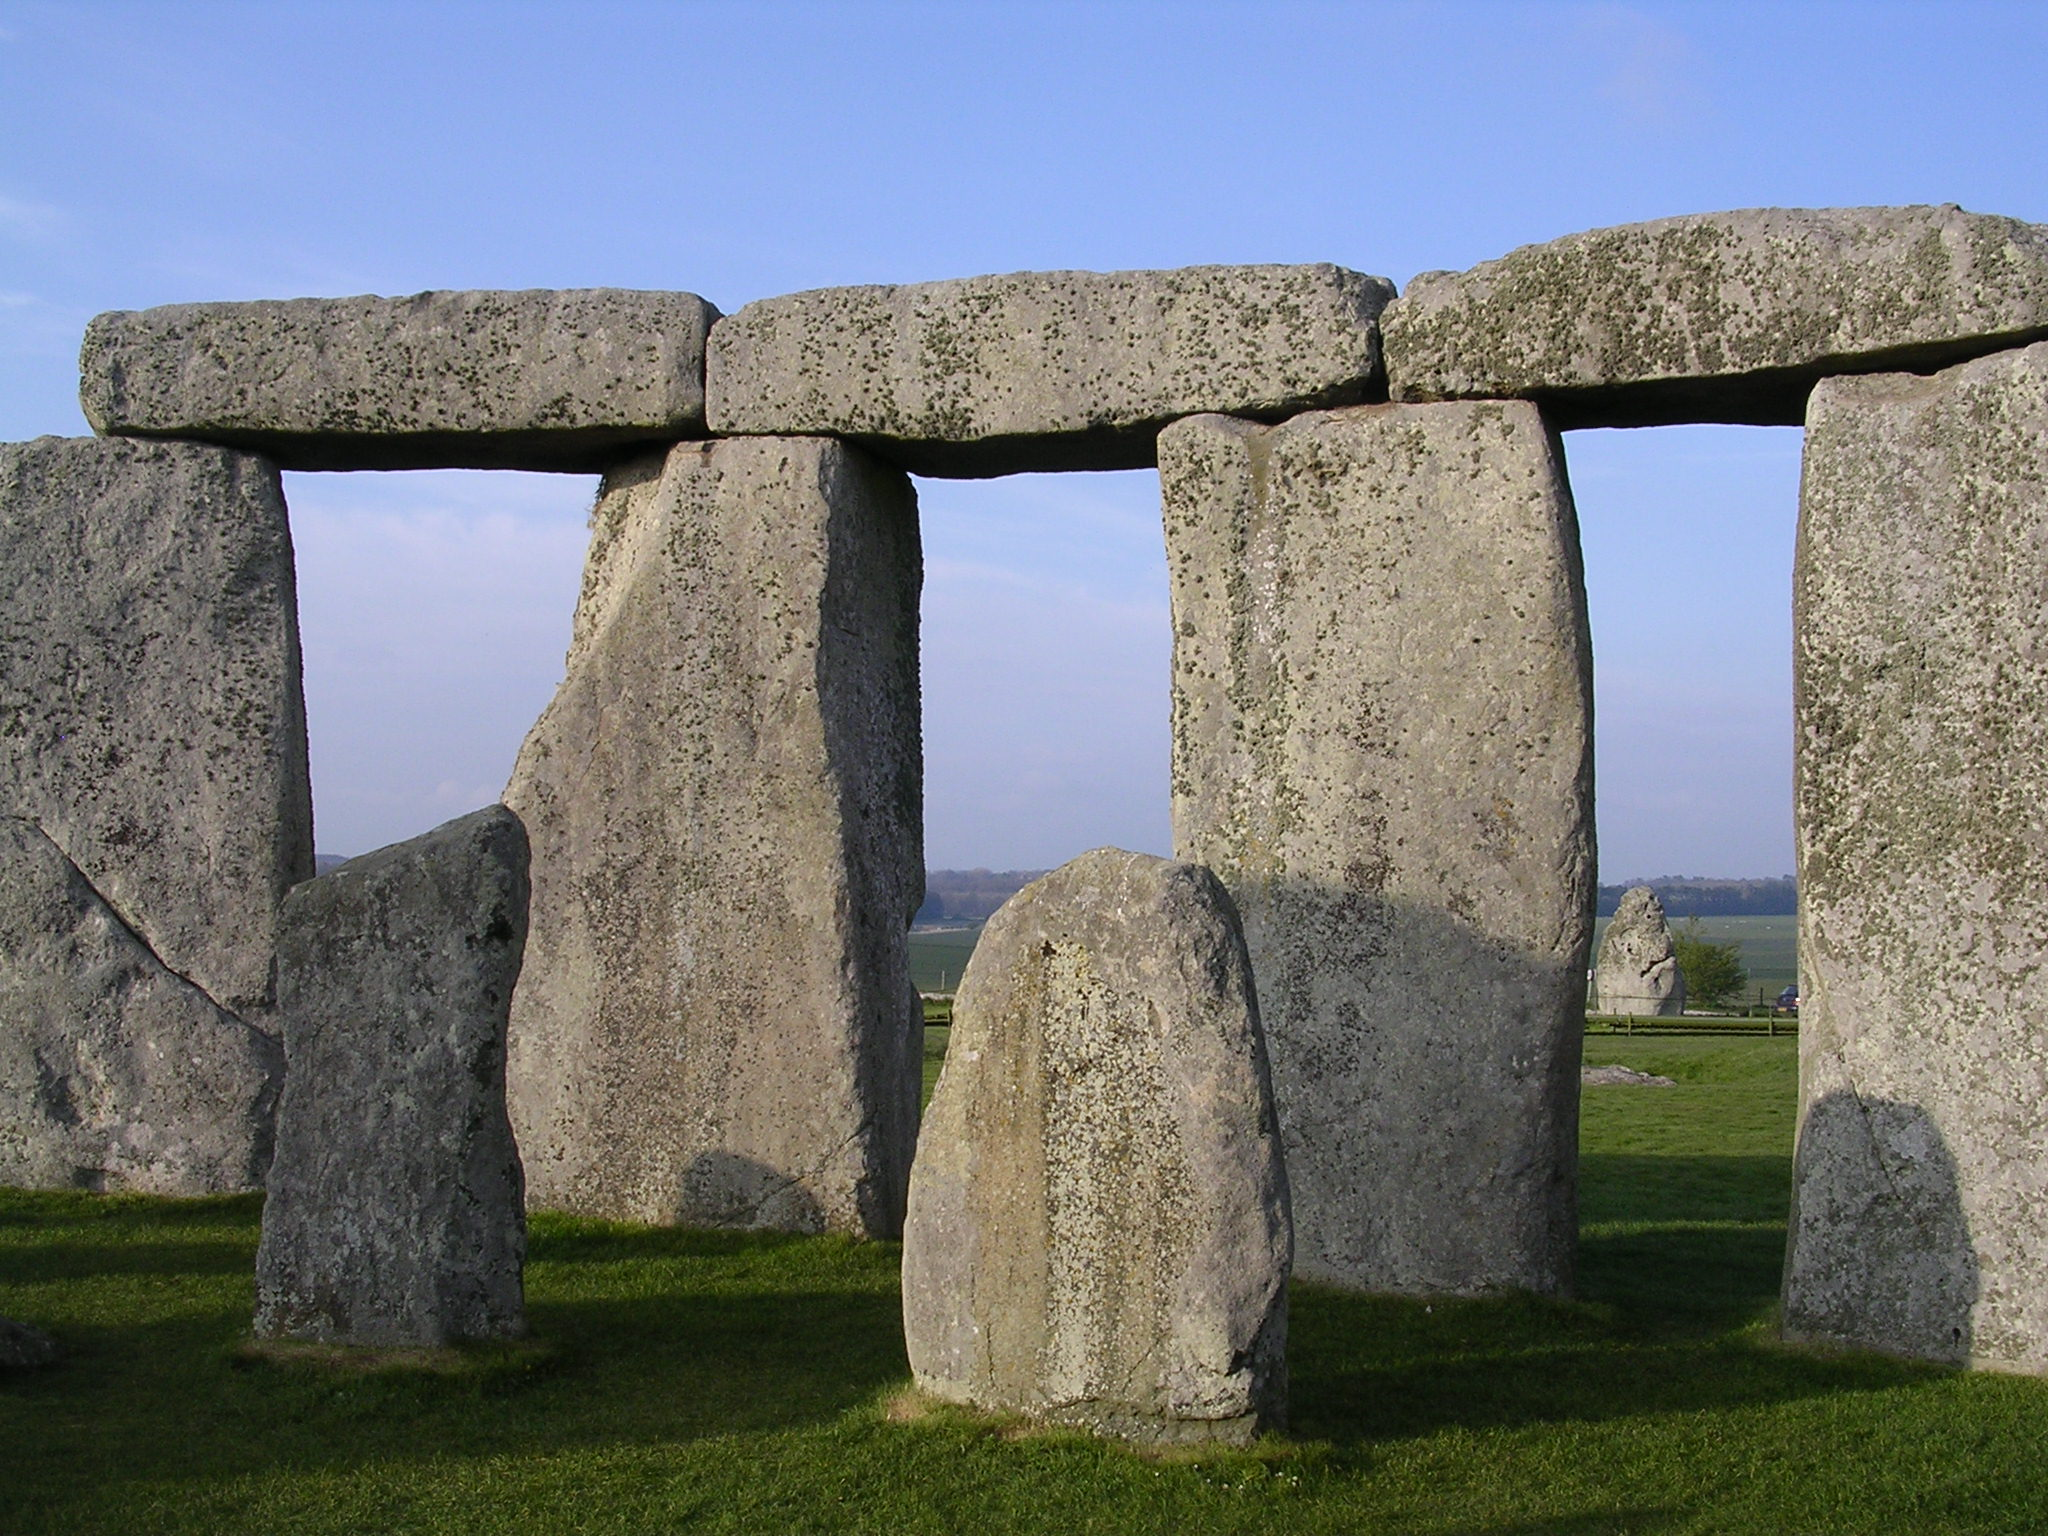 The facts and speculations about the stonehenge structures